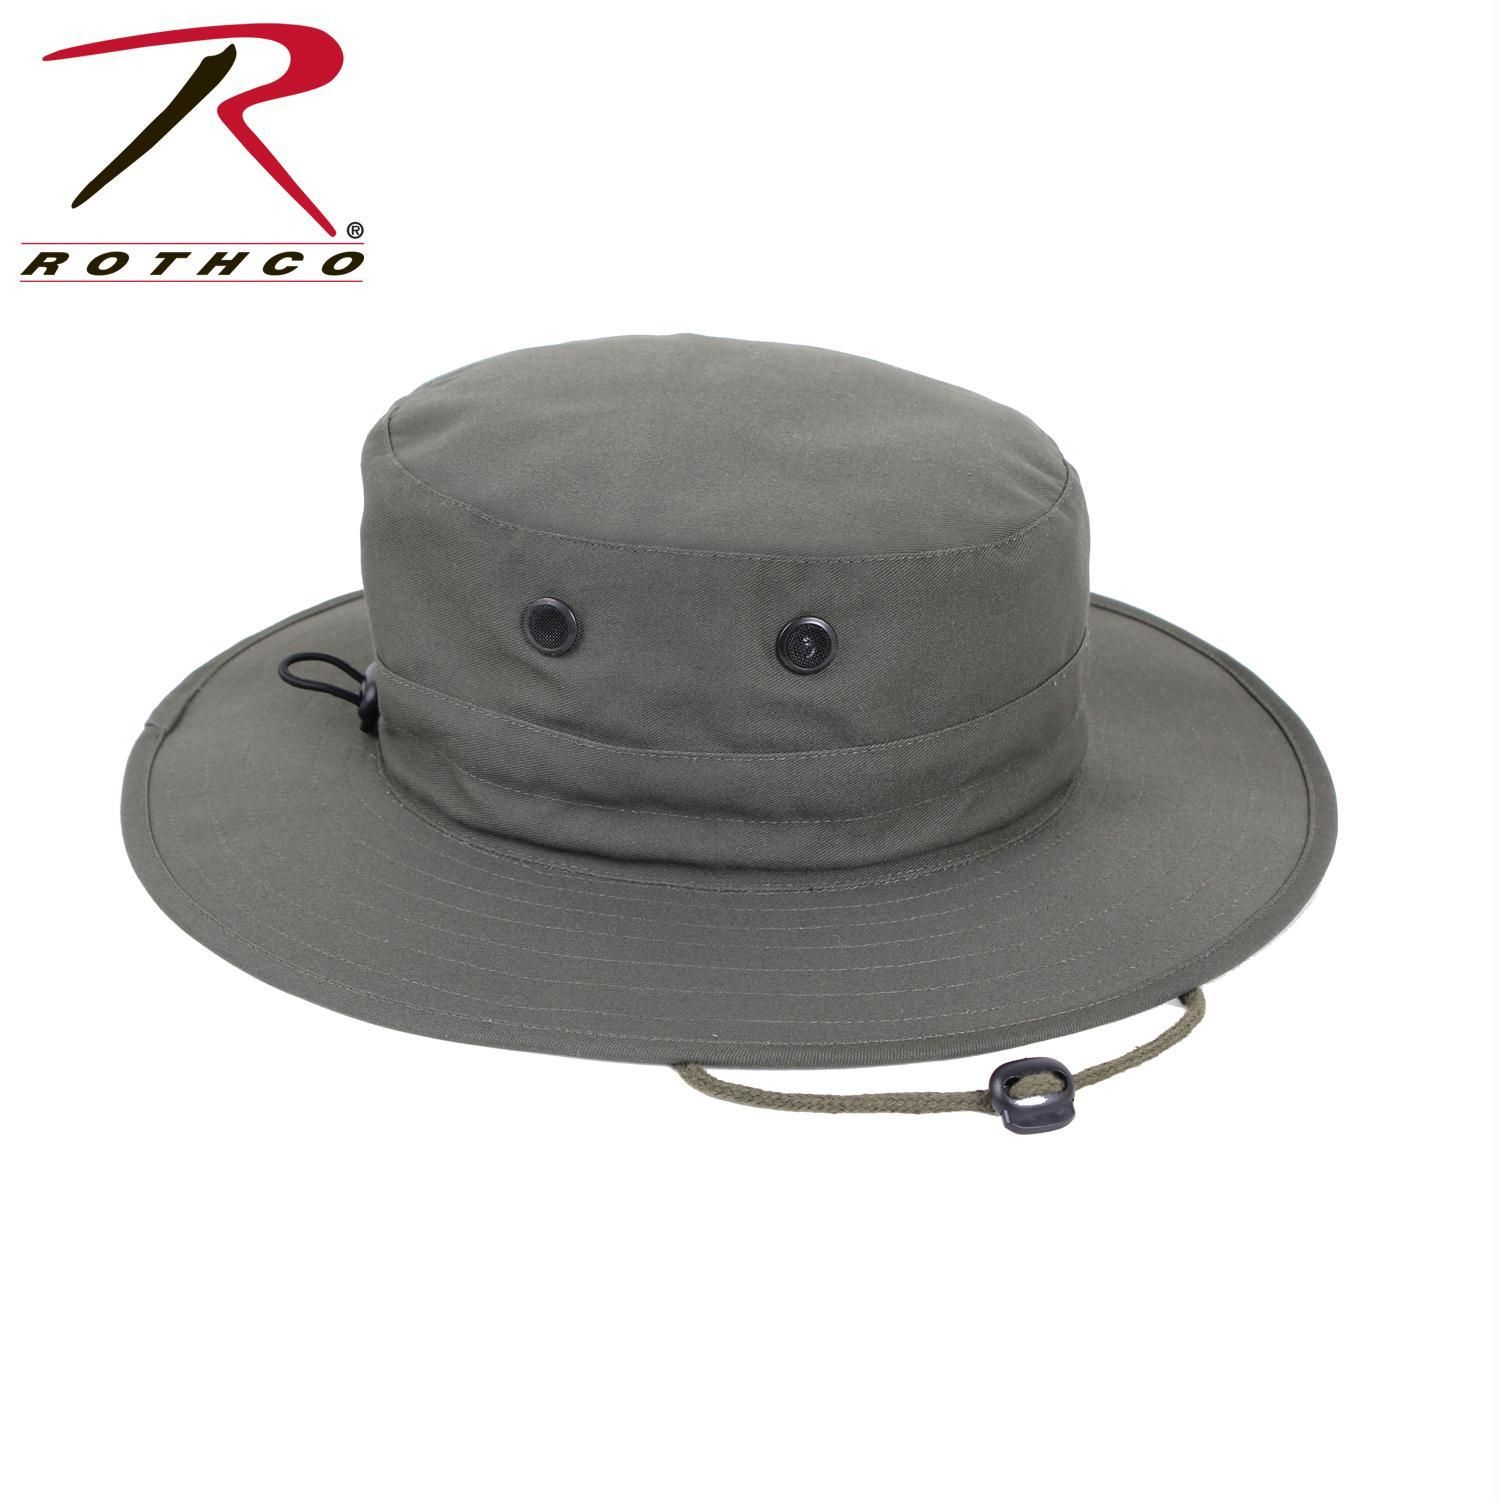 77b5487f487 Rothco Adjustable Boonie Hat in 2018